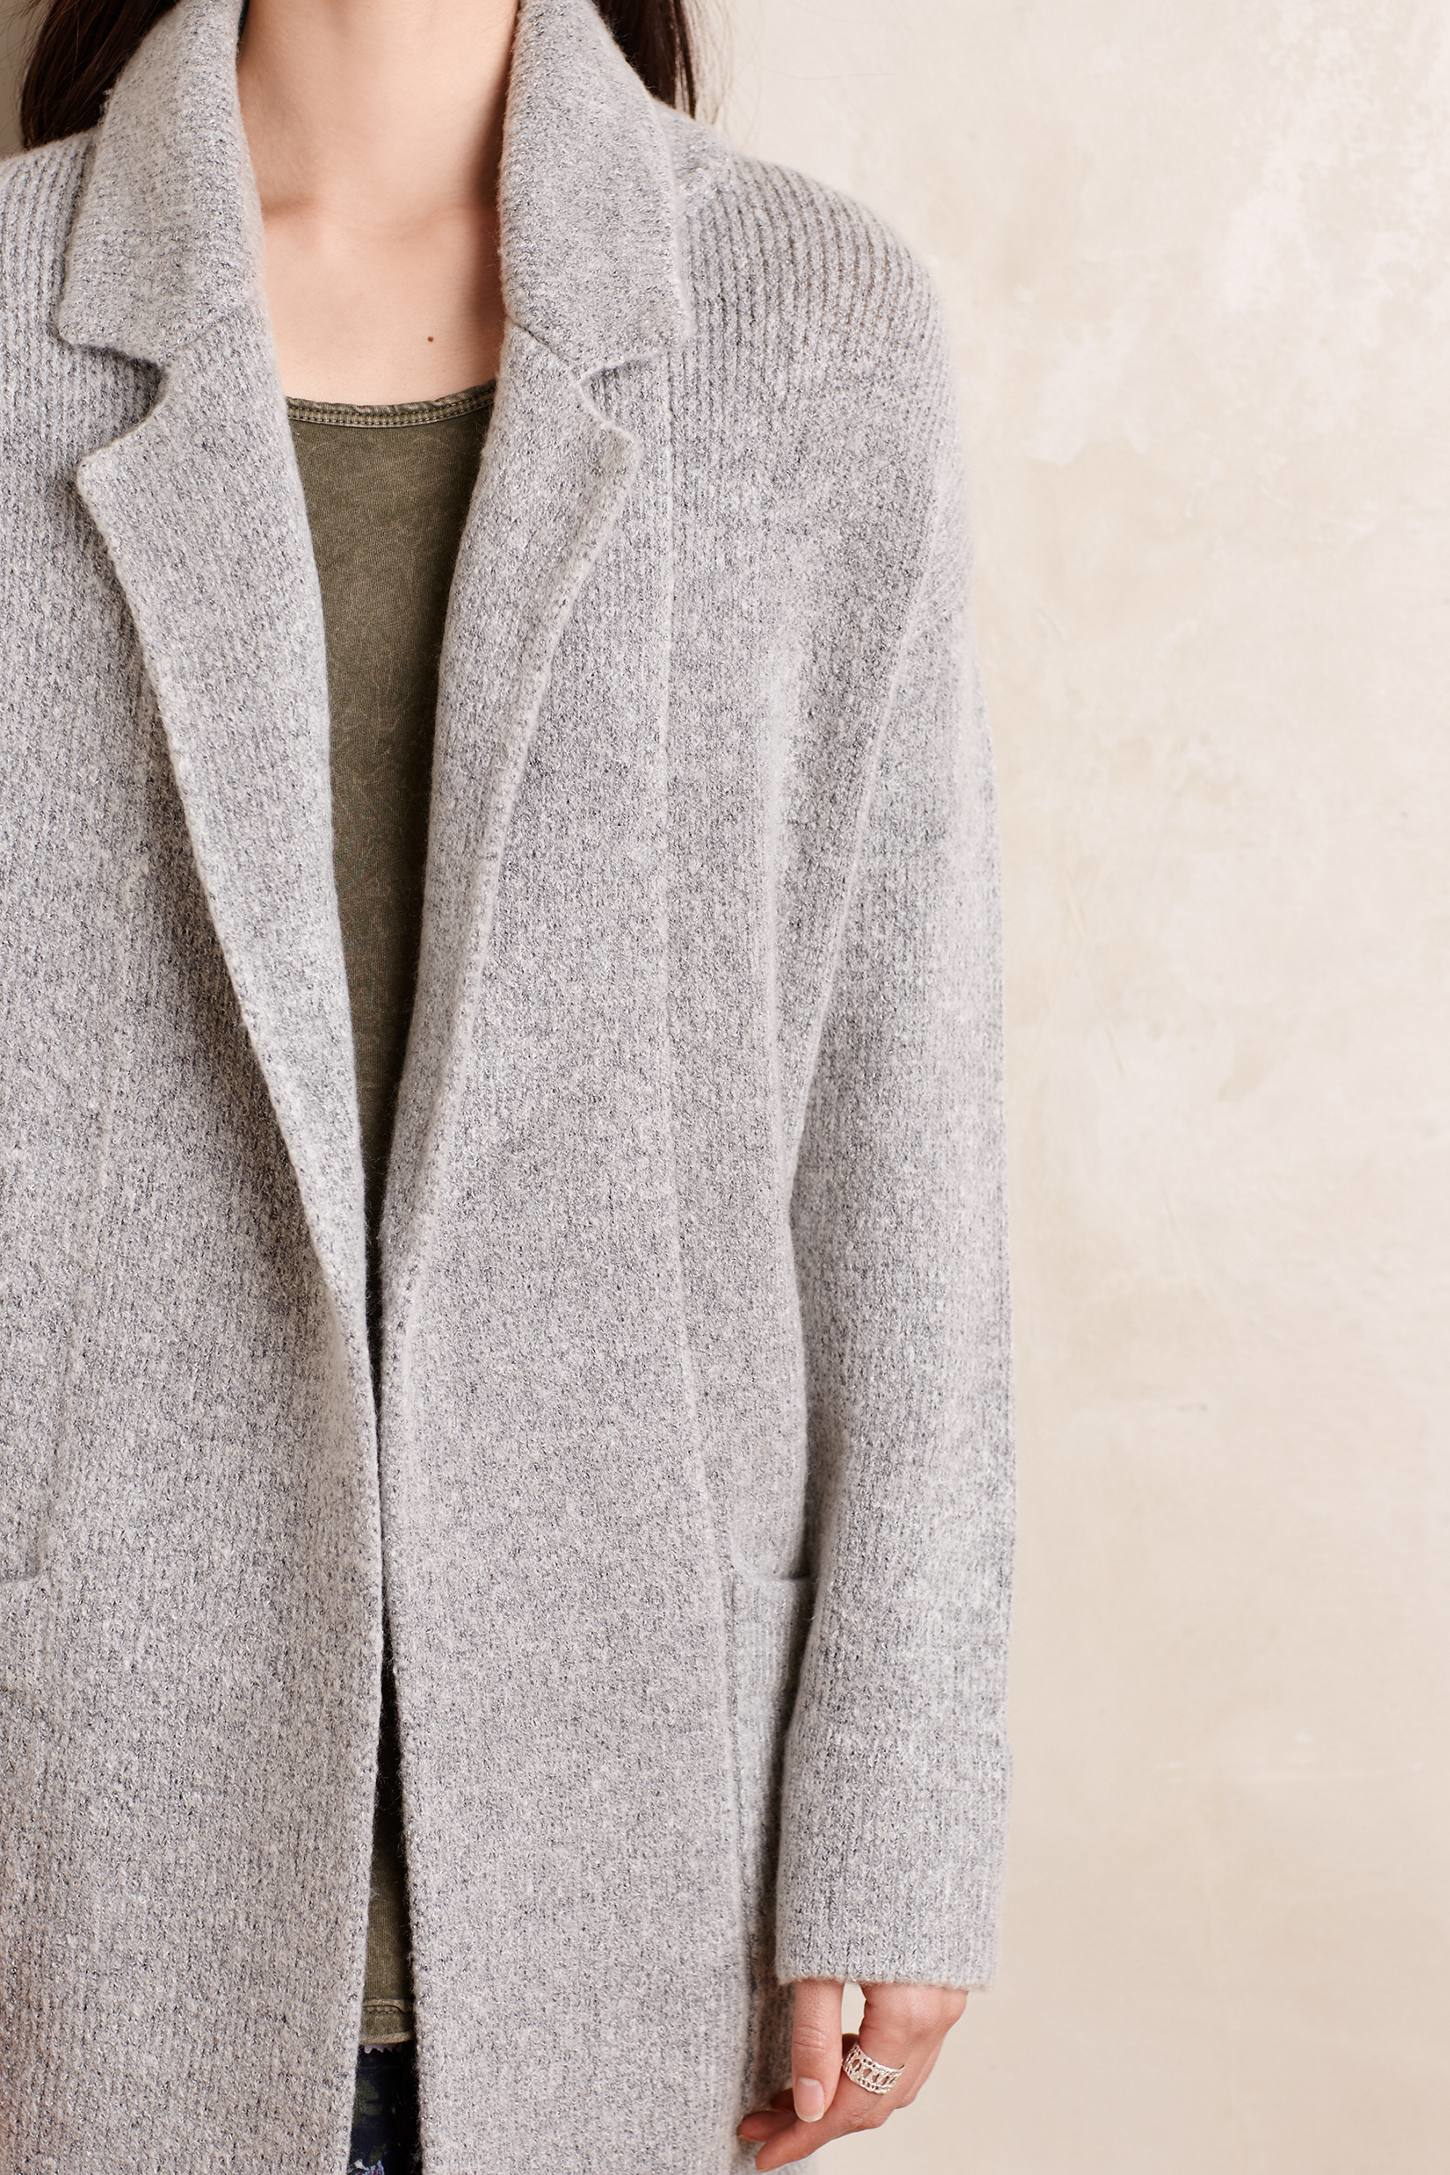 Sunday in brooklyn Derry Sweater Coat in Gray | Lyst